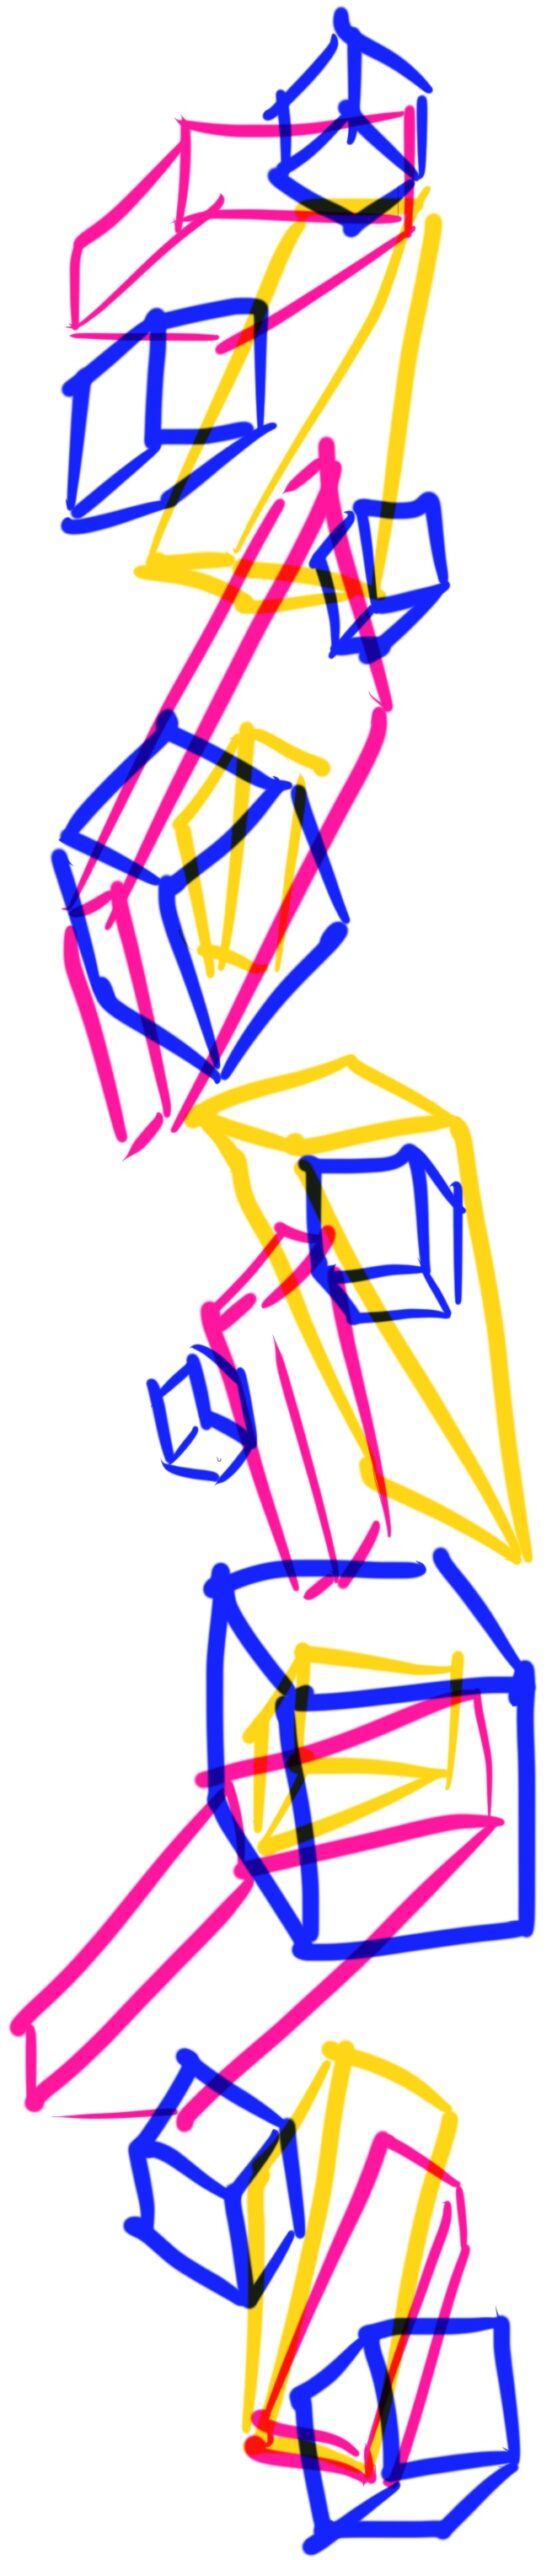 Illustration of blocks in yellow, pink, and blue